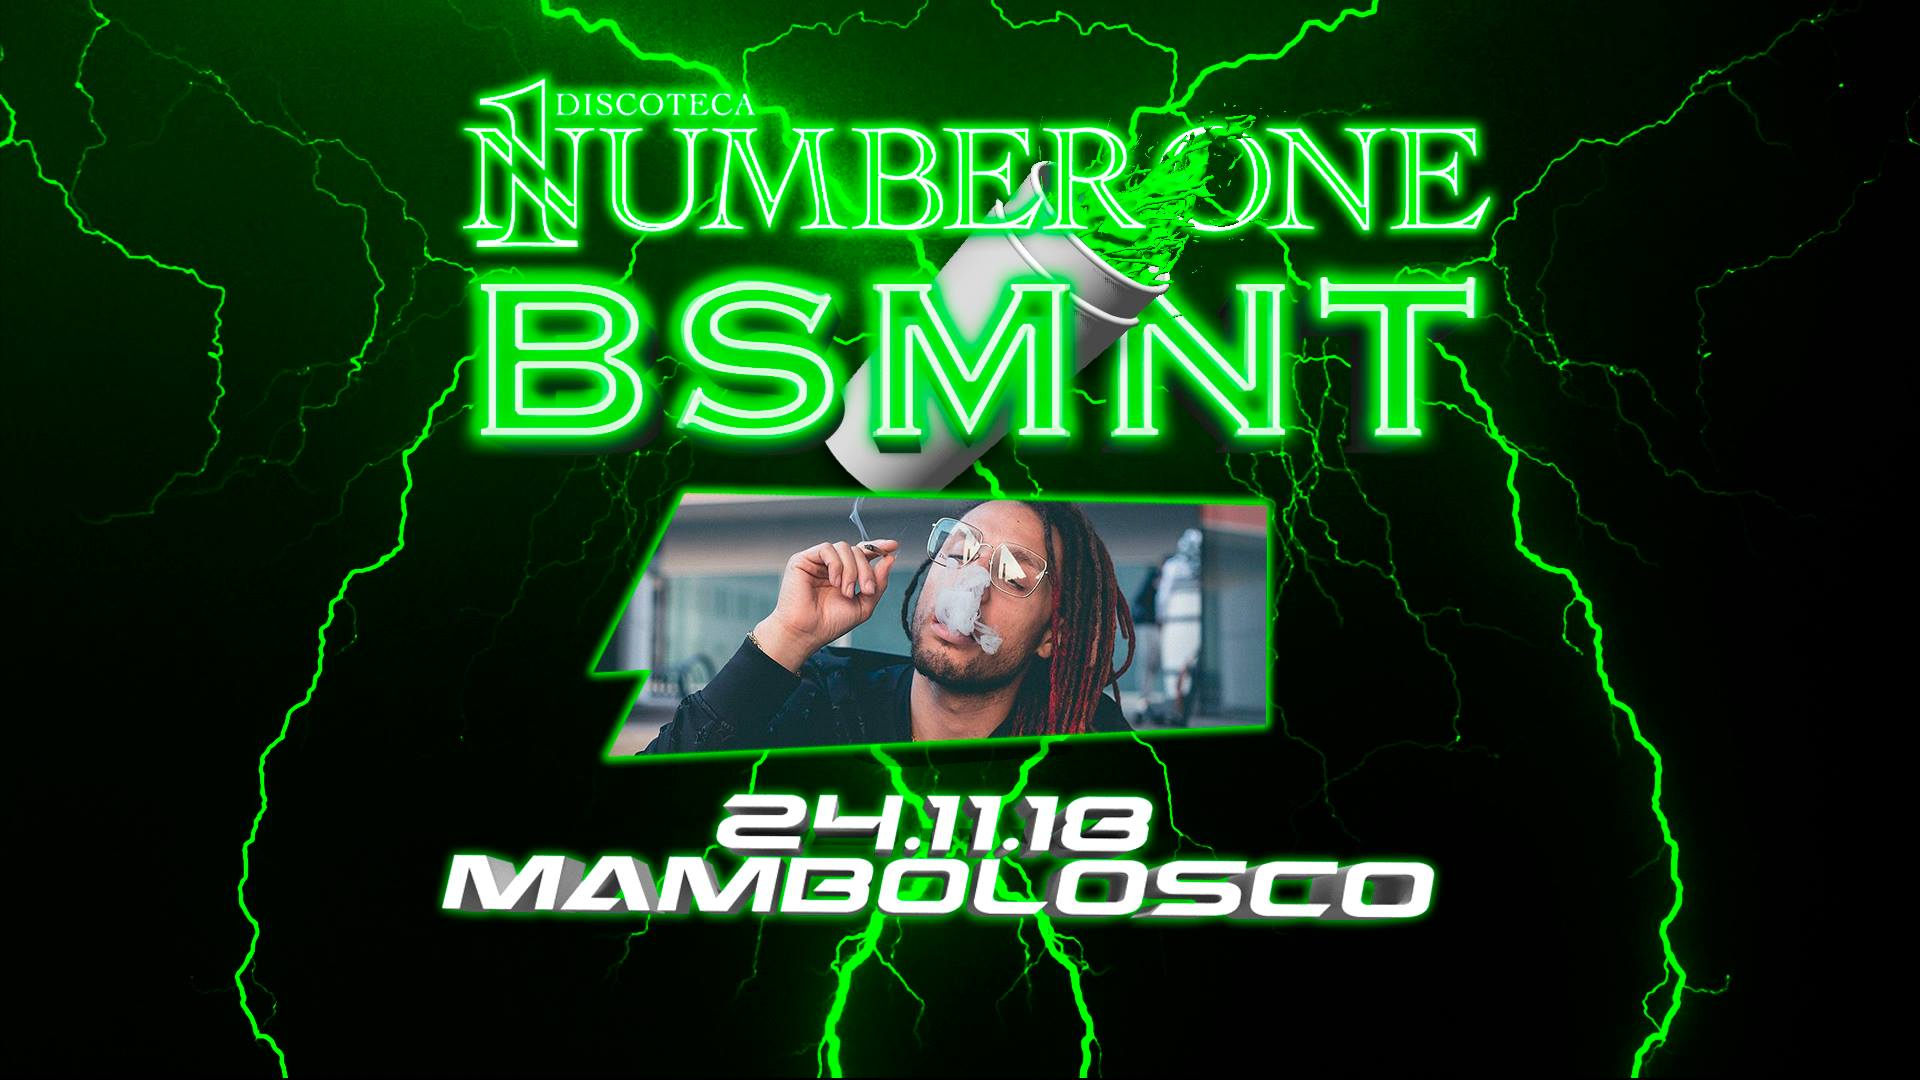 Number One – Basement Mambolosco